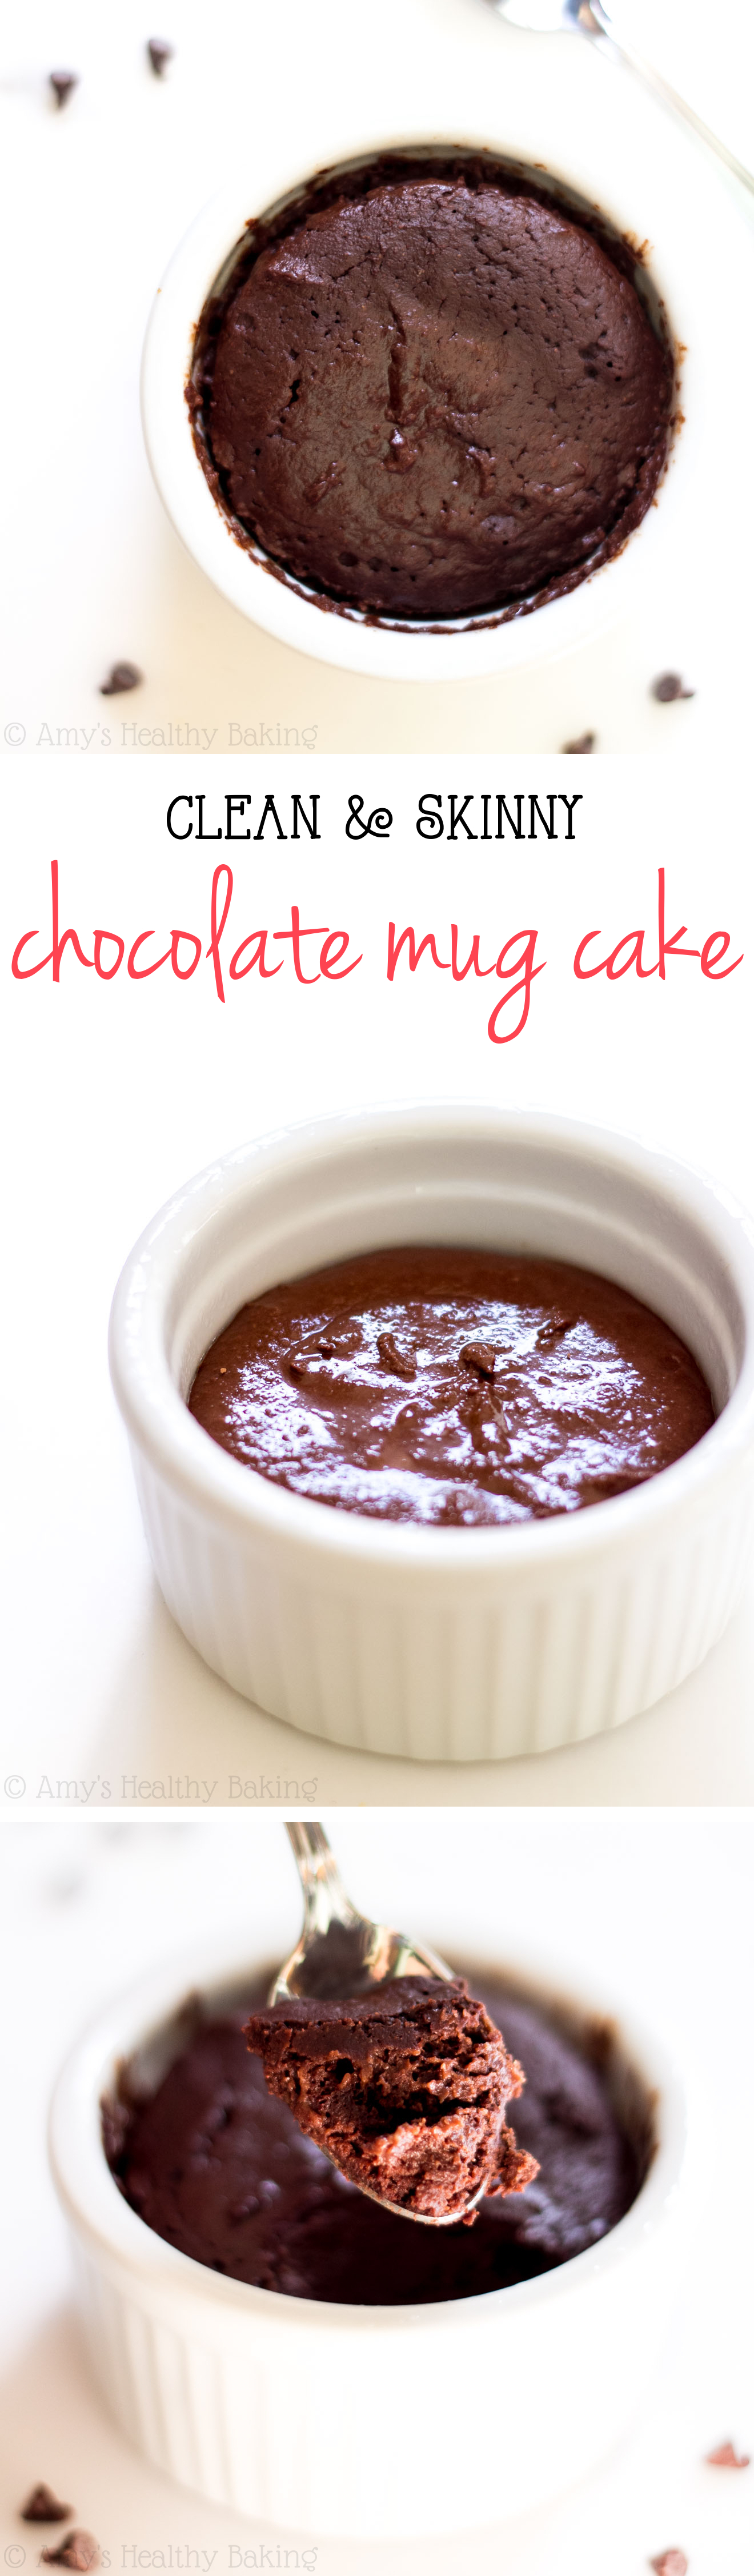 Single Serving Clean Chocolate Mug Cake {Recipe Video ...